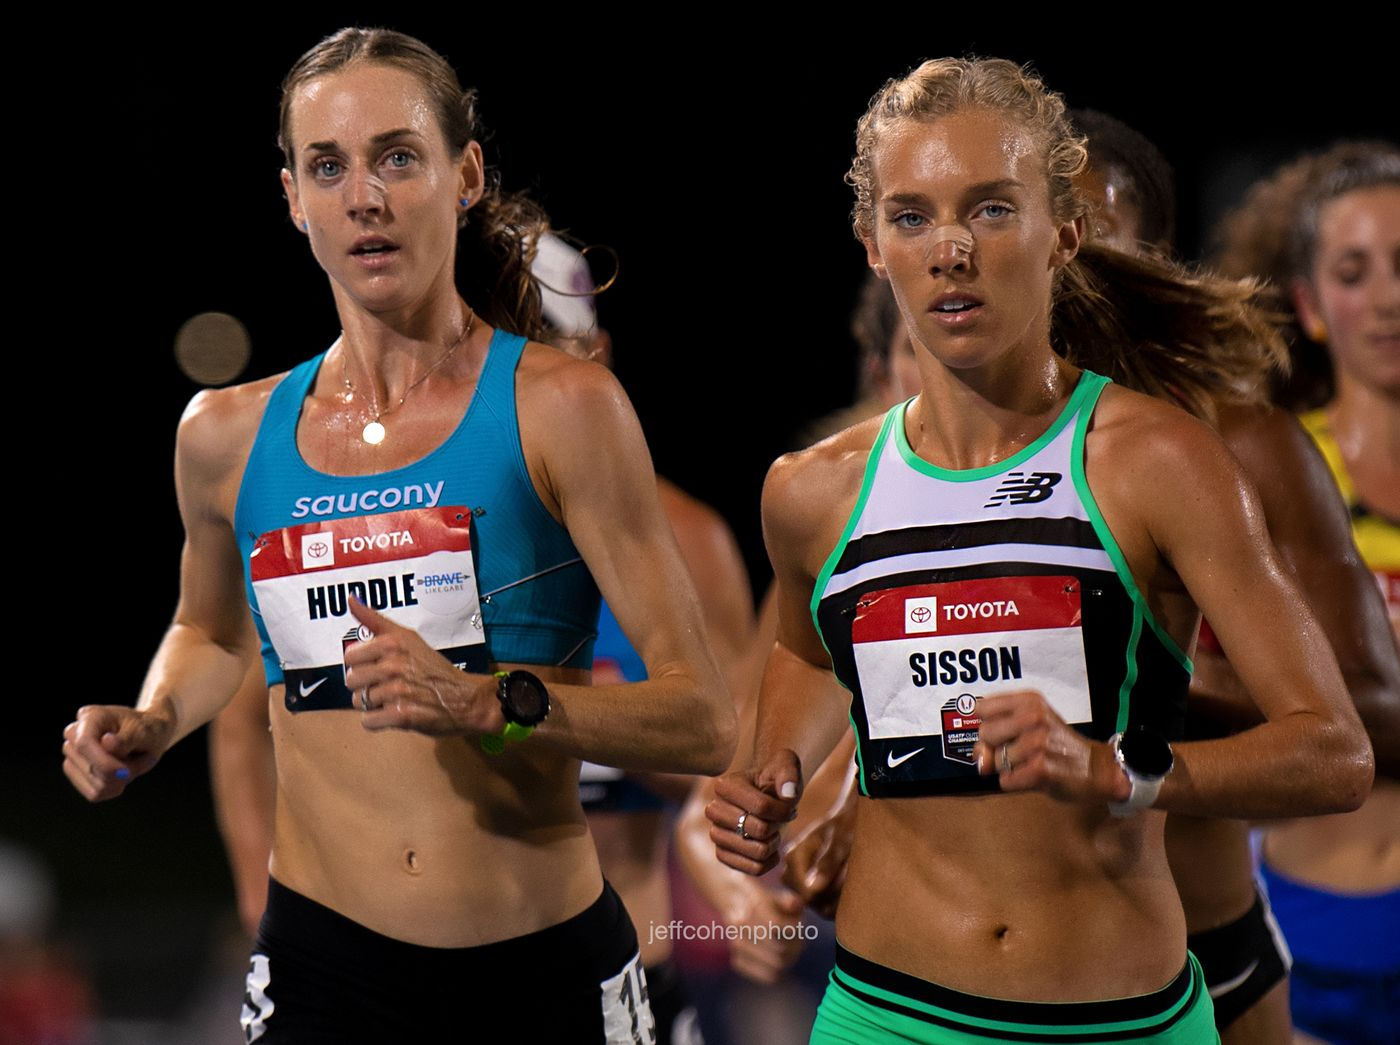 Molly Huddle and Emily Sisson, 10000 meters, 2019 Toyota USATF outdoor championships. Des Moines, IOWA.